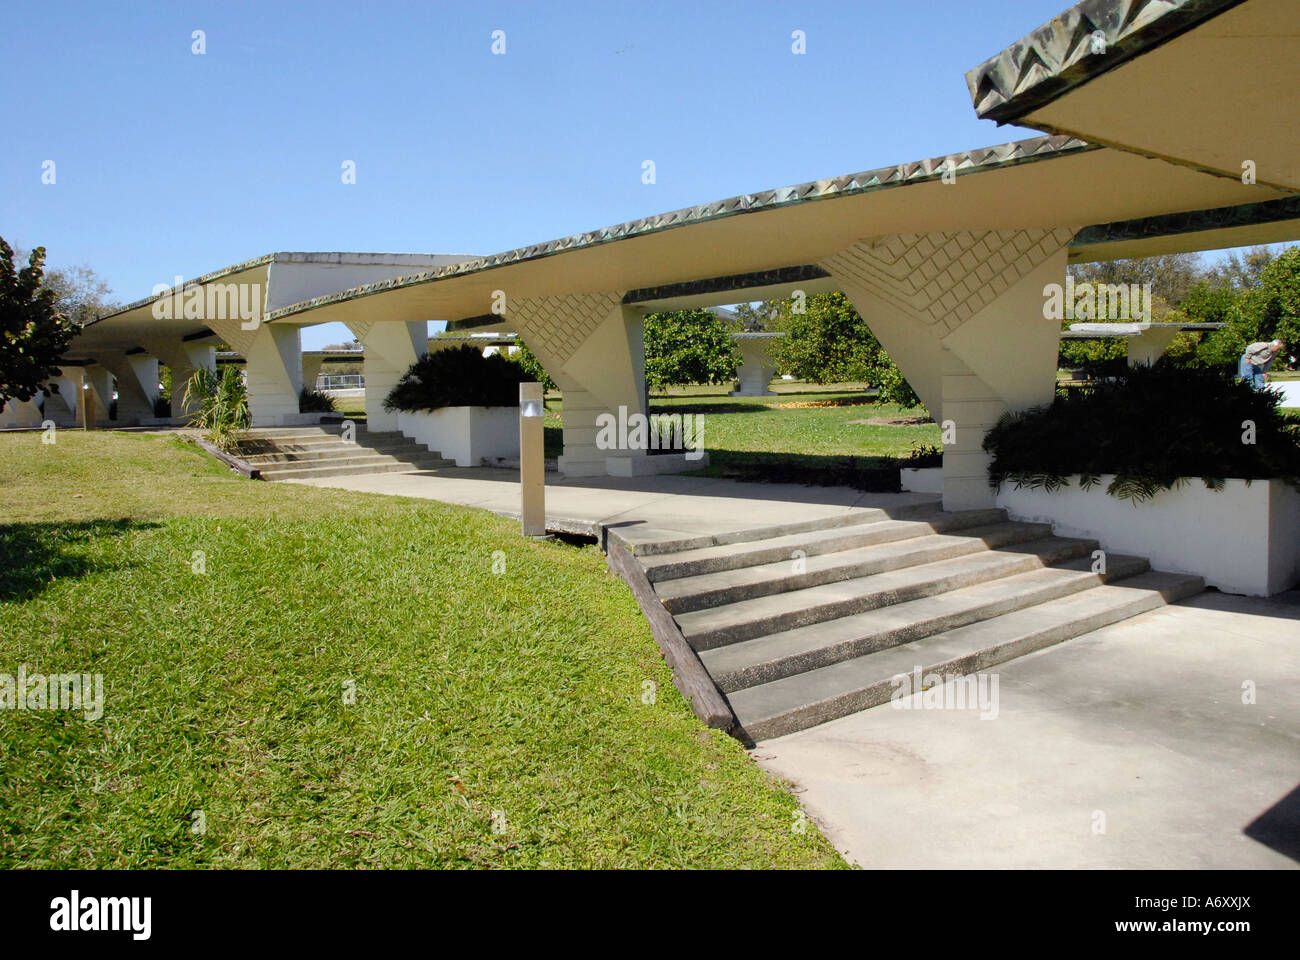 Exceptional Campus At Florida Southern College FSC Frank Lloyd Wright Architecture At  Lakeland Central Florida United States